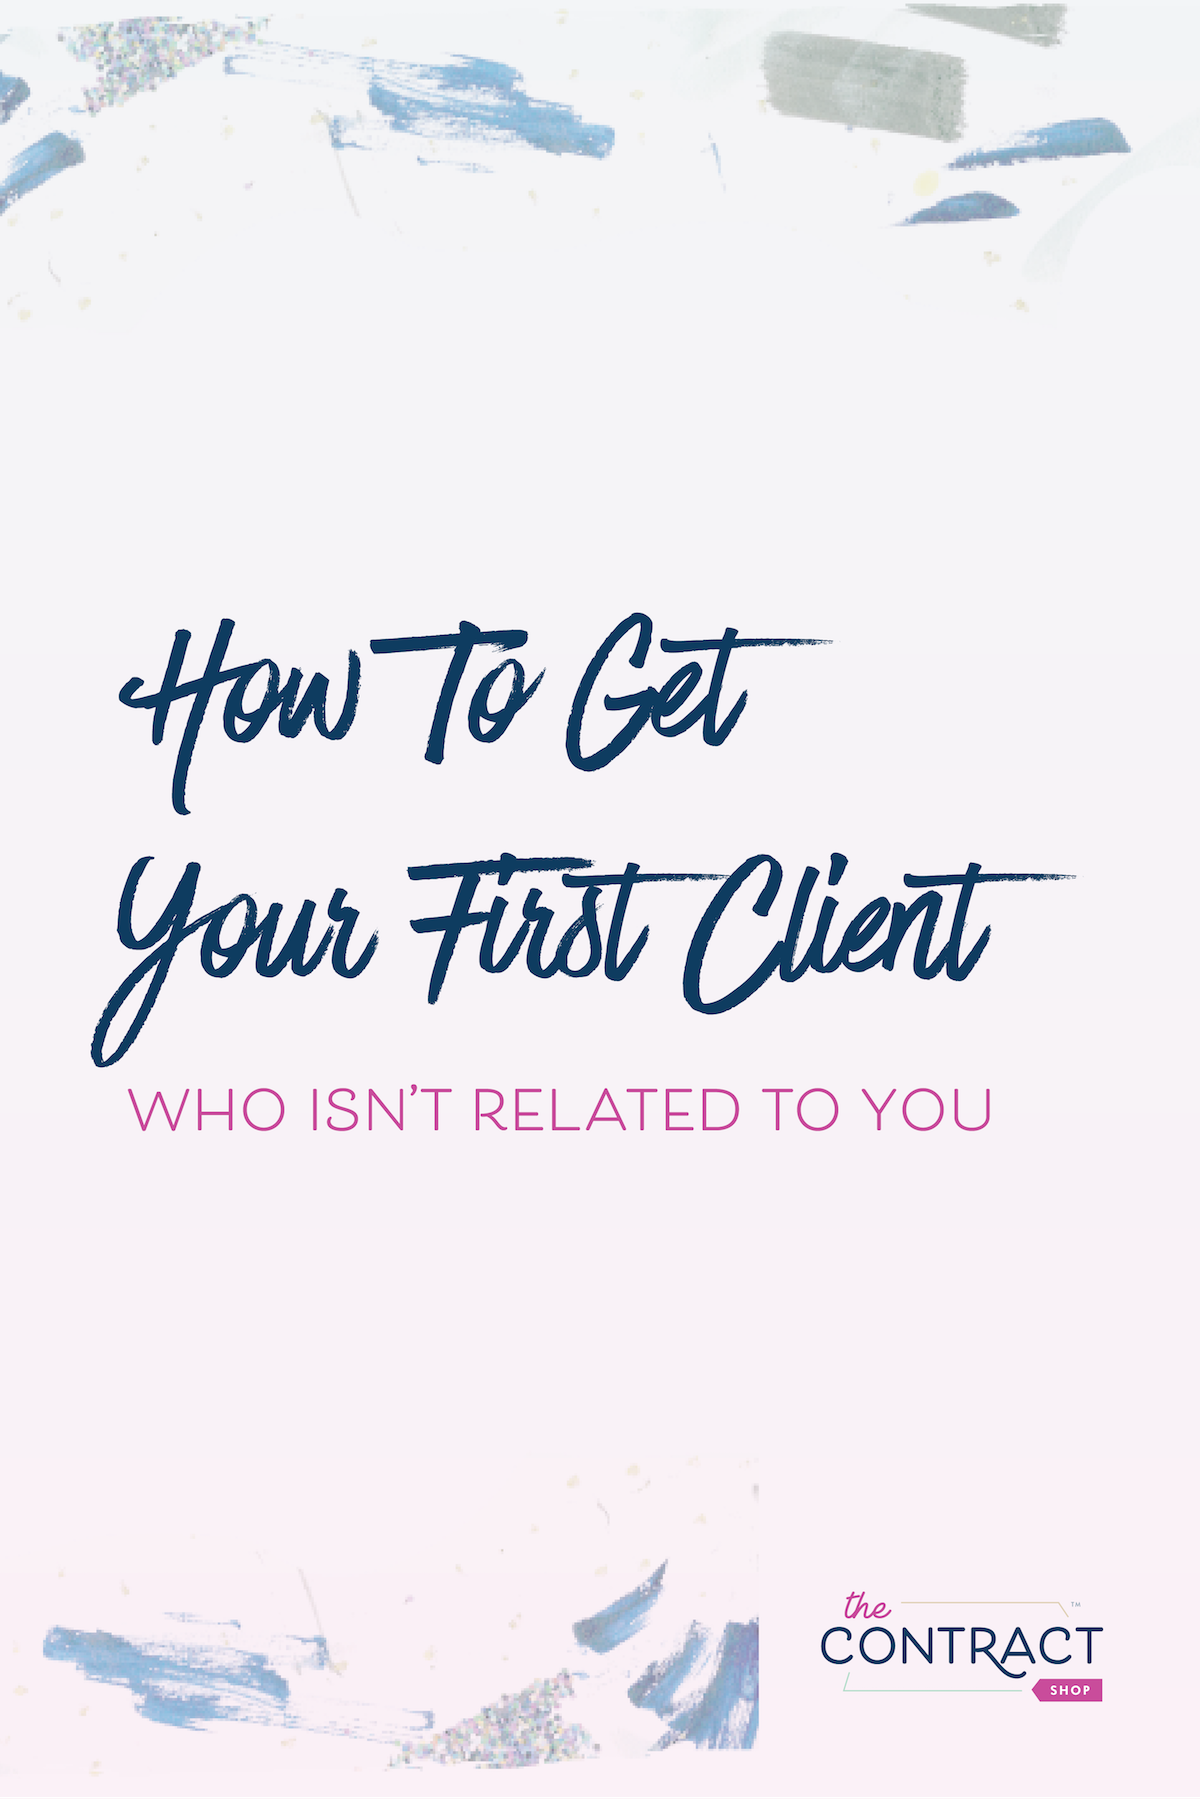 5 ways to find your first clients. #newbusiness #startup #smallbusiness